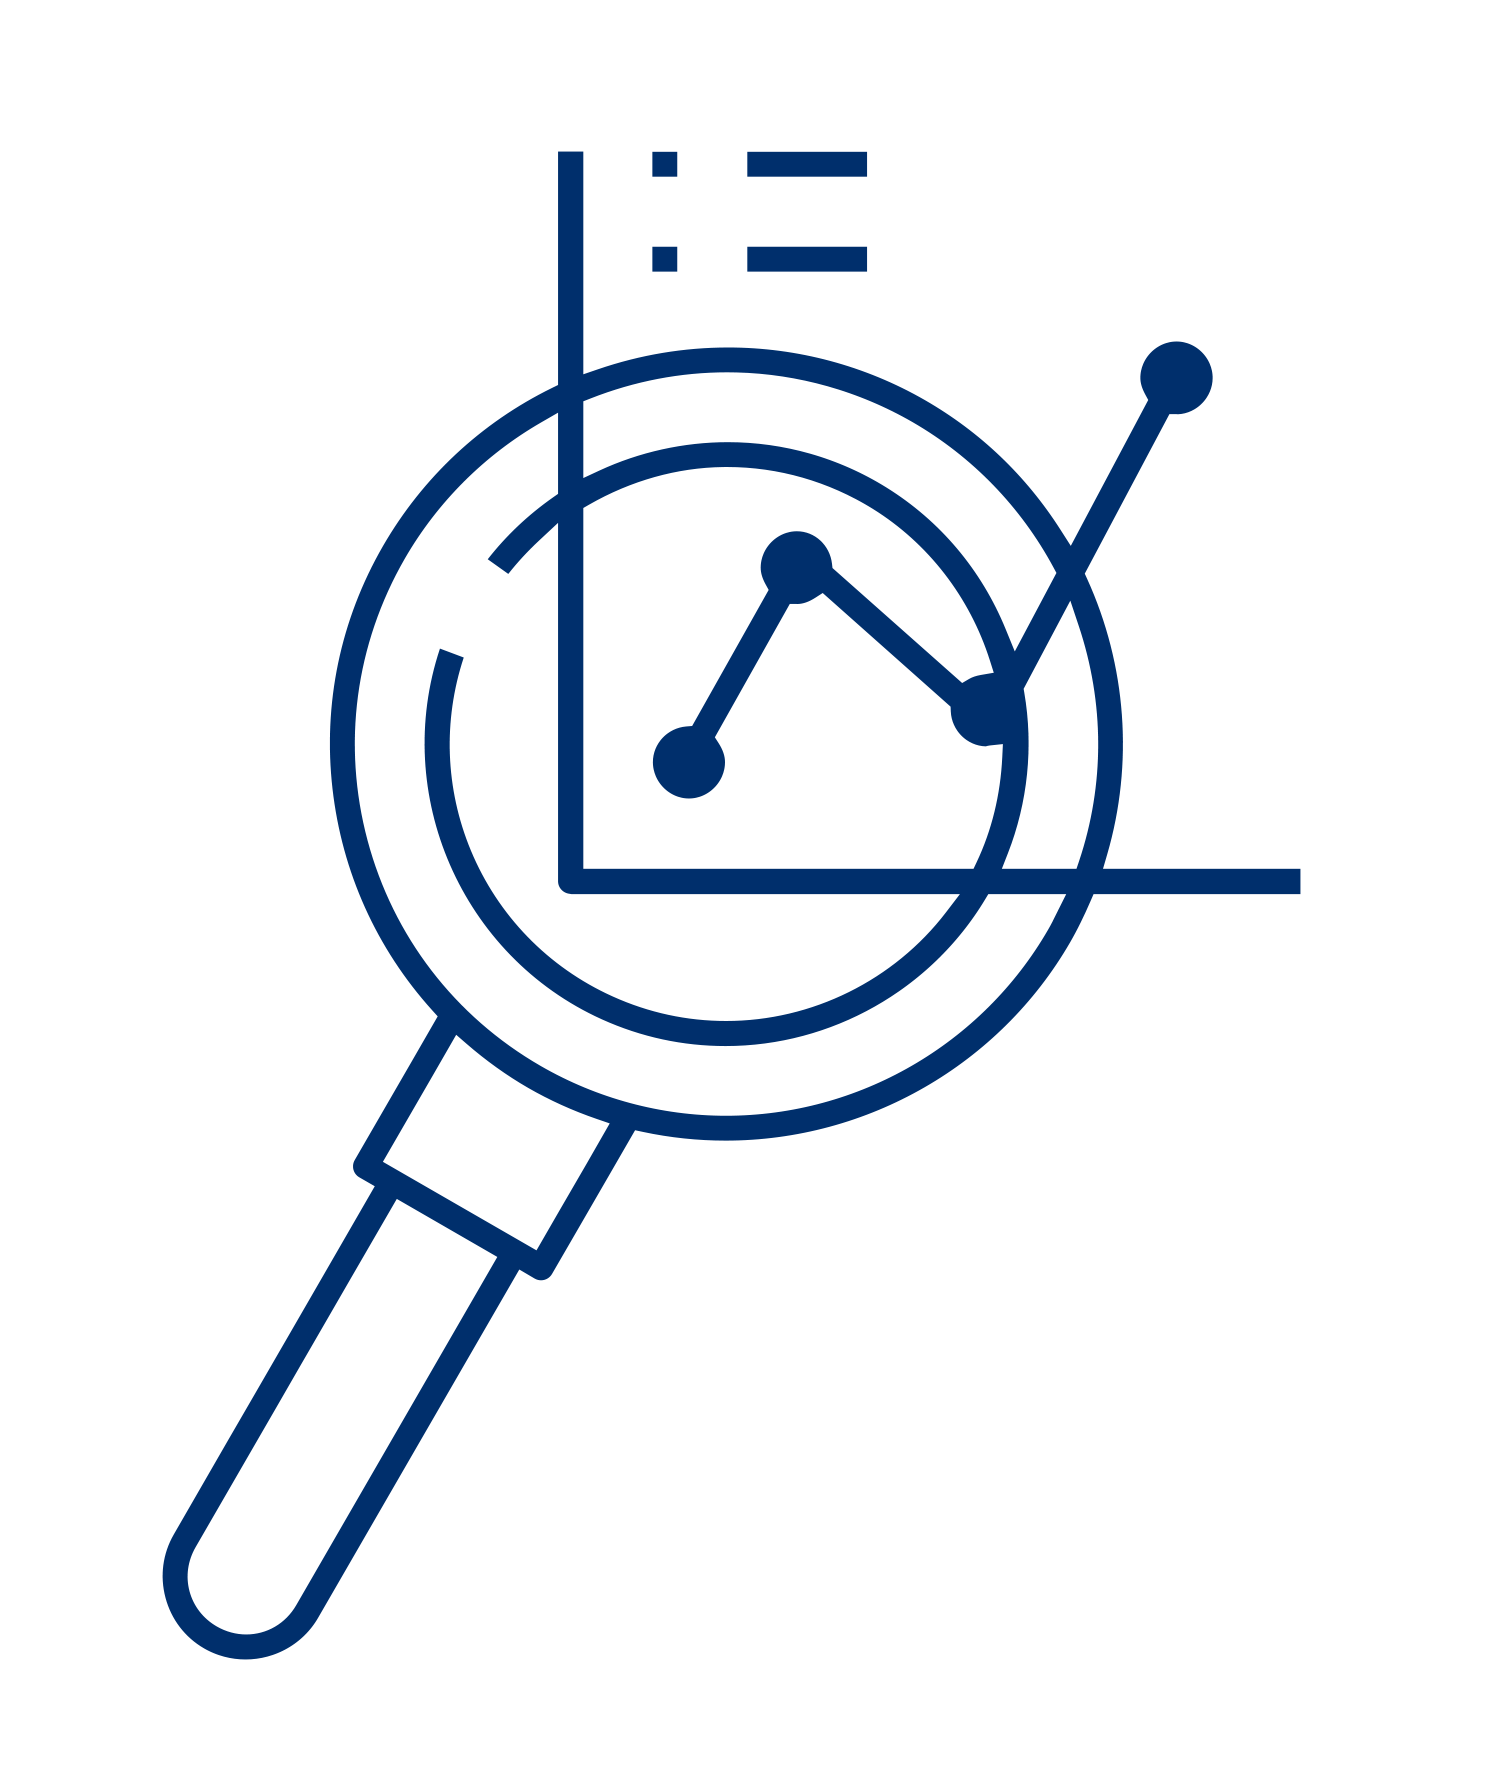 Icon of a magnifying glass with a line chart